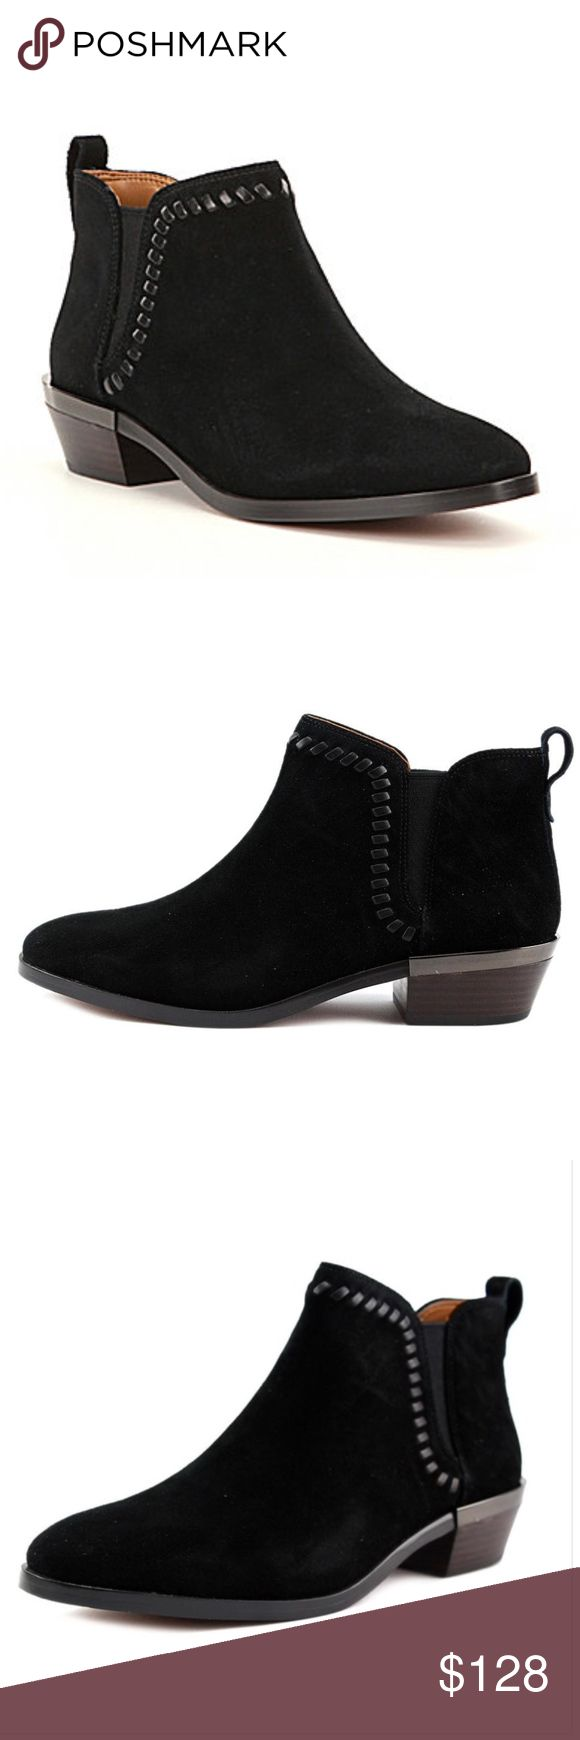 NIB COACH CARTER SUEDE ANKLE BOOTS BLACK NEW IN BOX! LAST ONE!  (picture of model is only to give you an idea how to style the boots)  The Coach Carter Boots feature a Suede upper with a Round Toe. The Leather outsole lends lasting traction and wear. Style: Ankle Material: Suede Boot Height: Ankle Boots Heel Height: Low Heel Color: Black Shoe Width: Medium Coach Shoes Ankle Boots & Booties